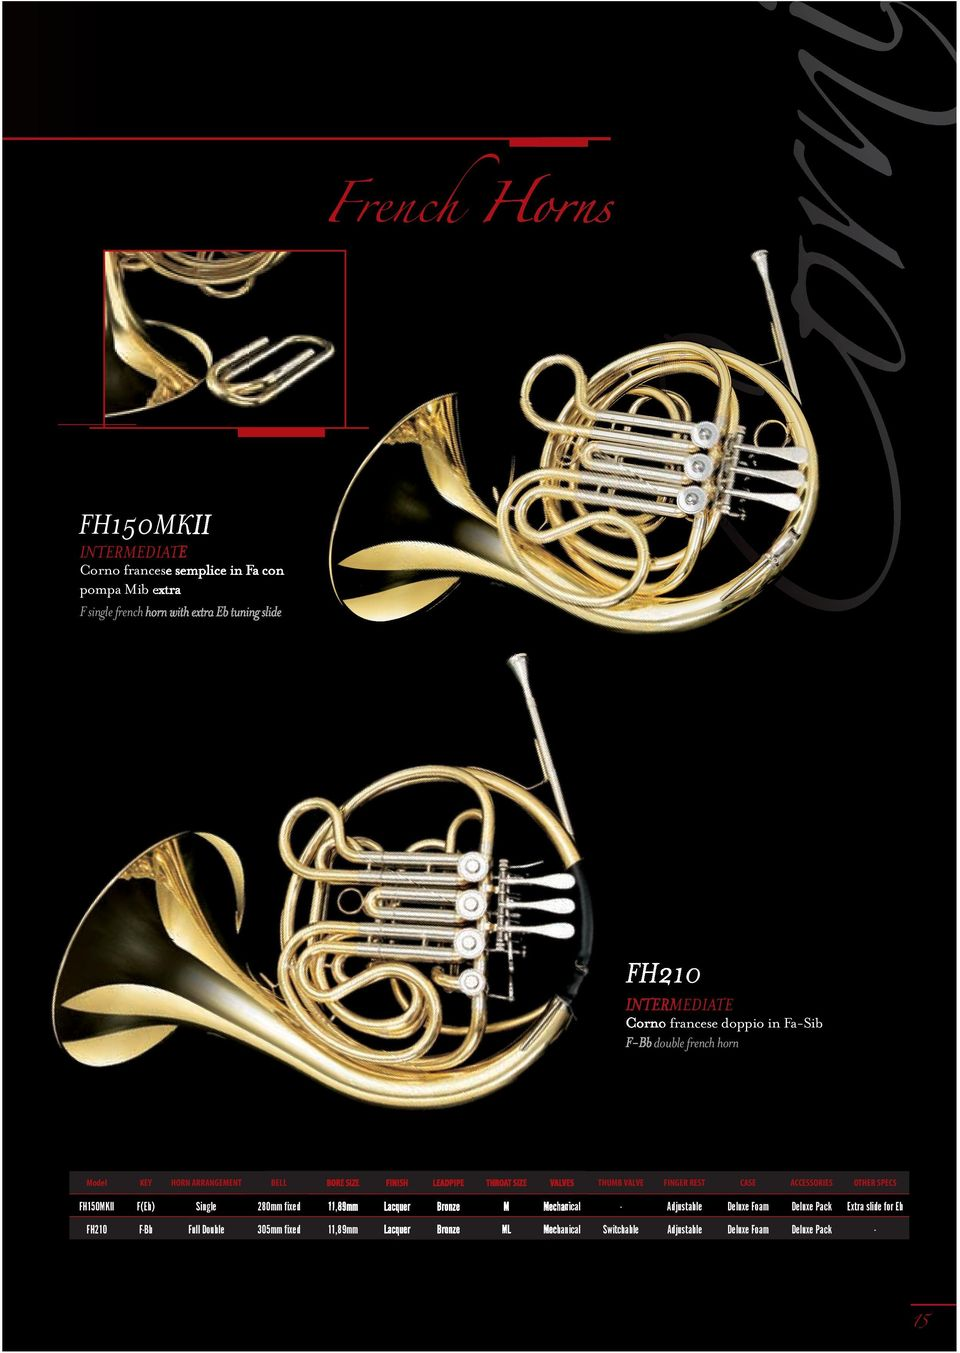 F-Bb double french horn Model KEY HORN ARRANGEMENT BELL BORE SIZE FINISH